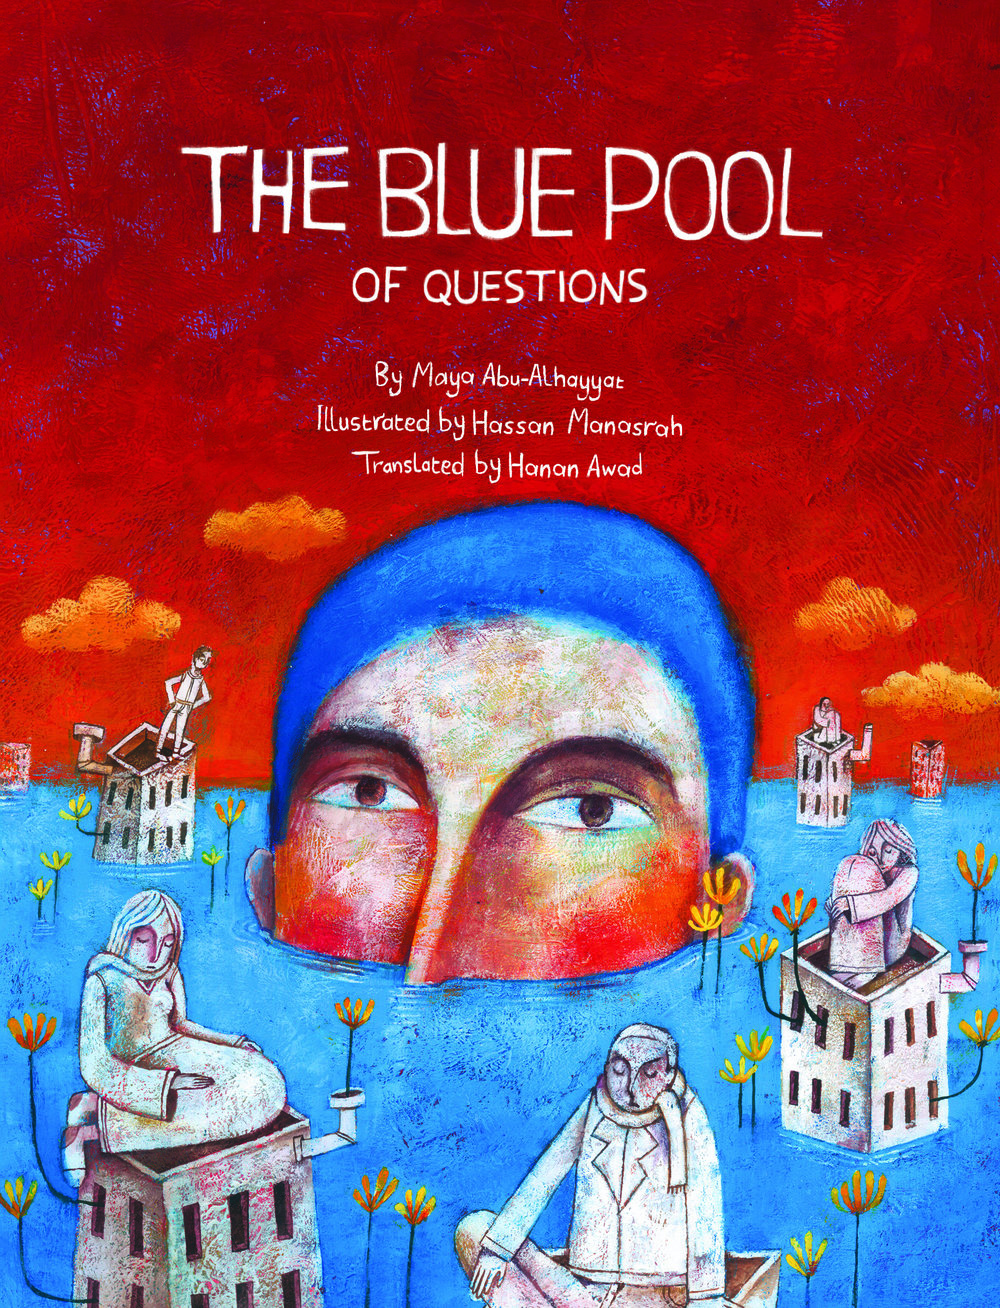 BluePool_cover.jpg